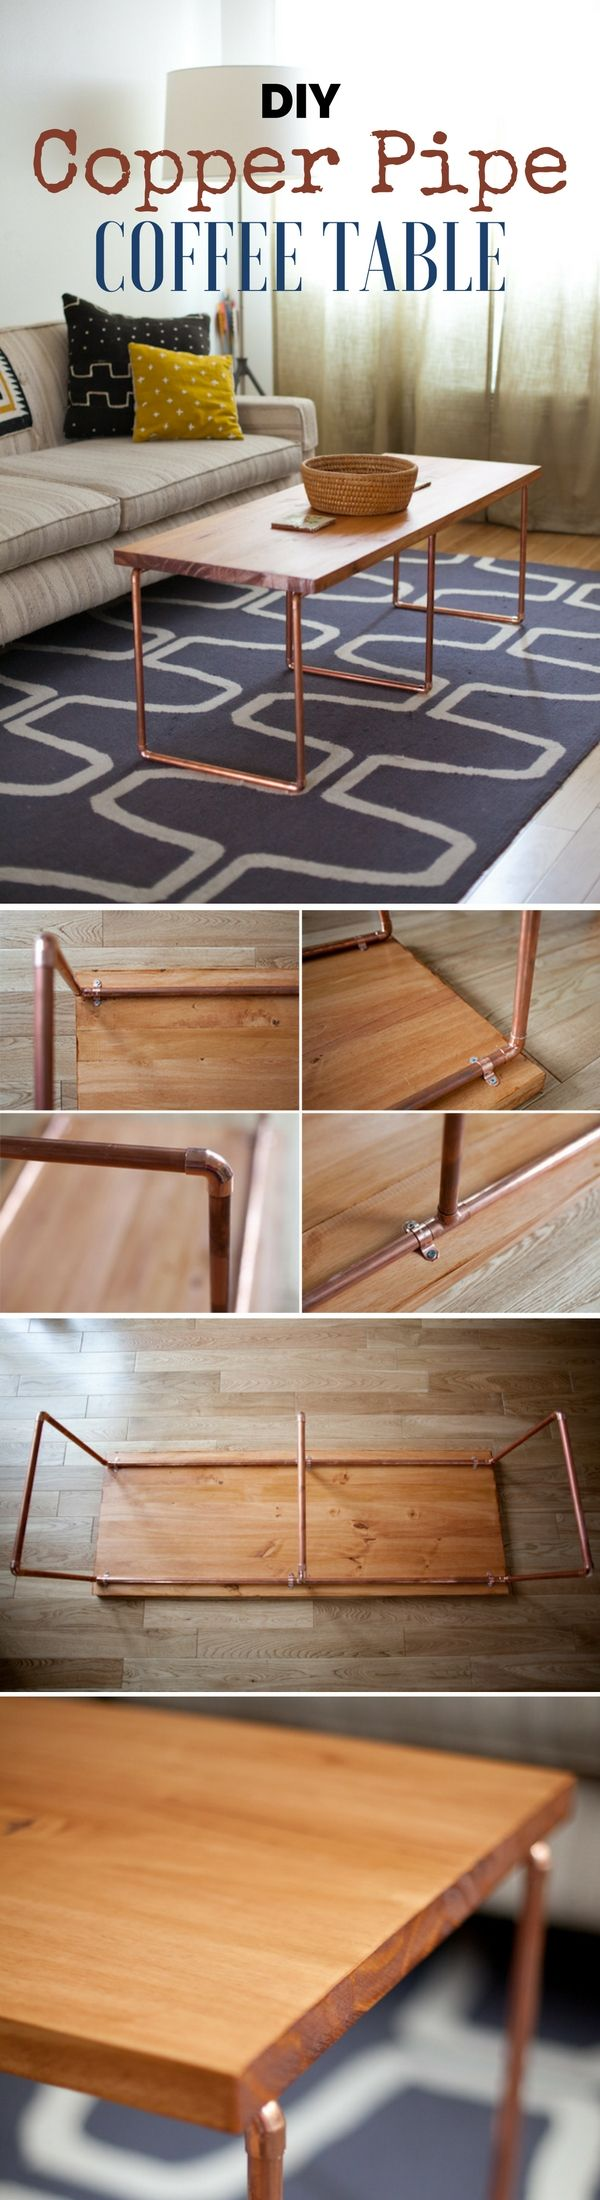 Easy To Build Coffee Table.Check Out How To Build This Easy Diy Copper Pipe Coffee Table